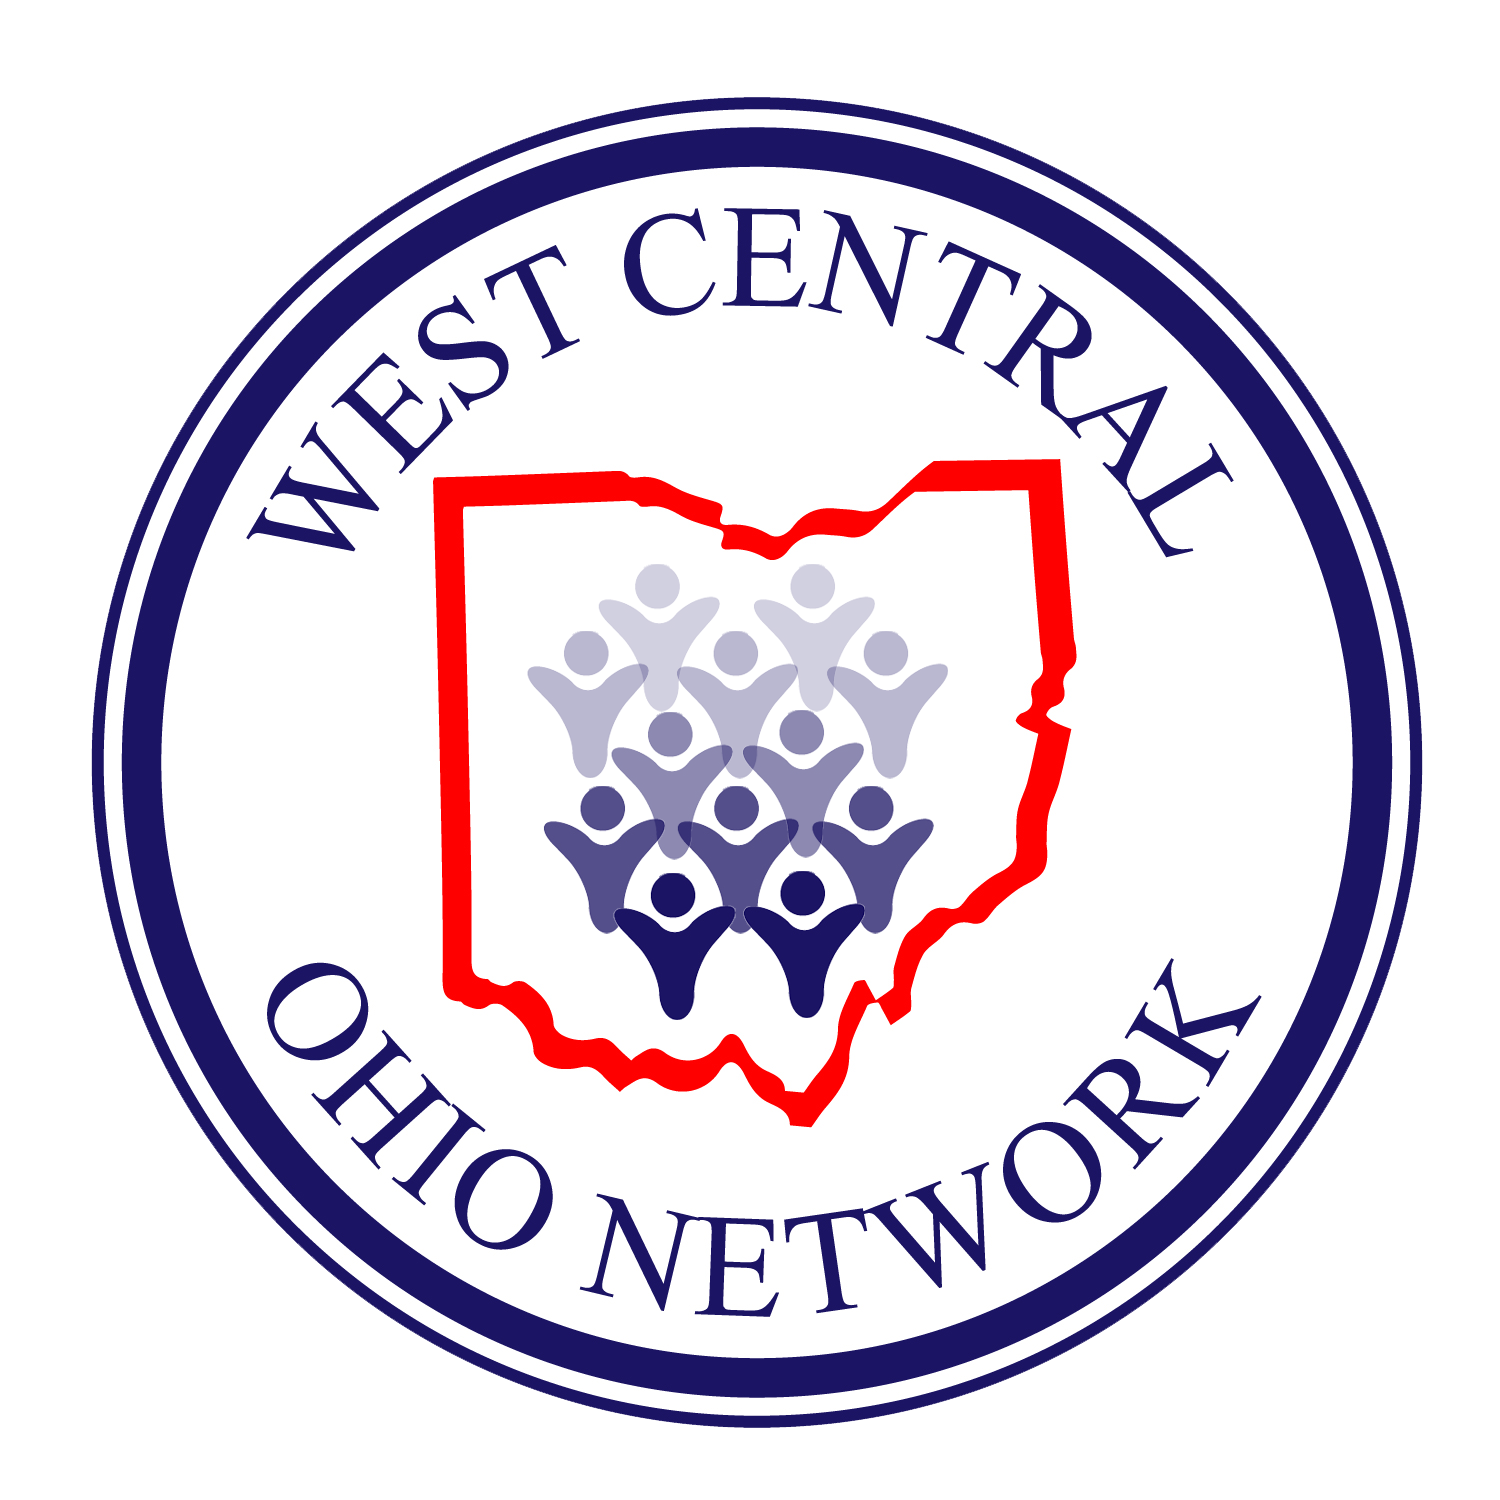 West Central Ohio Network (WestCON)